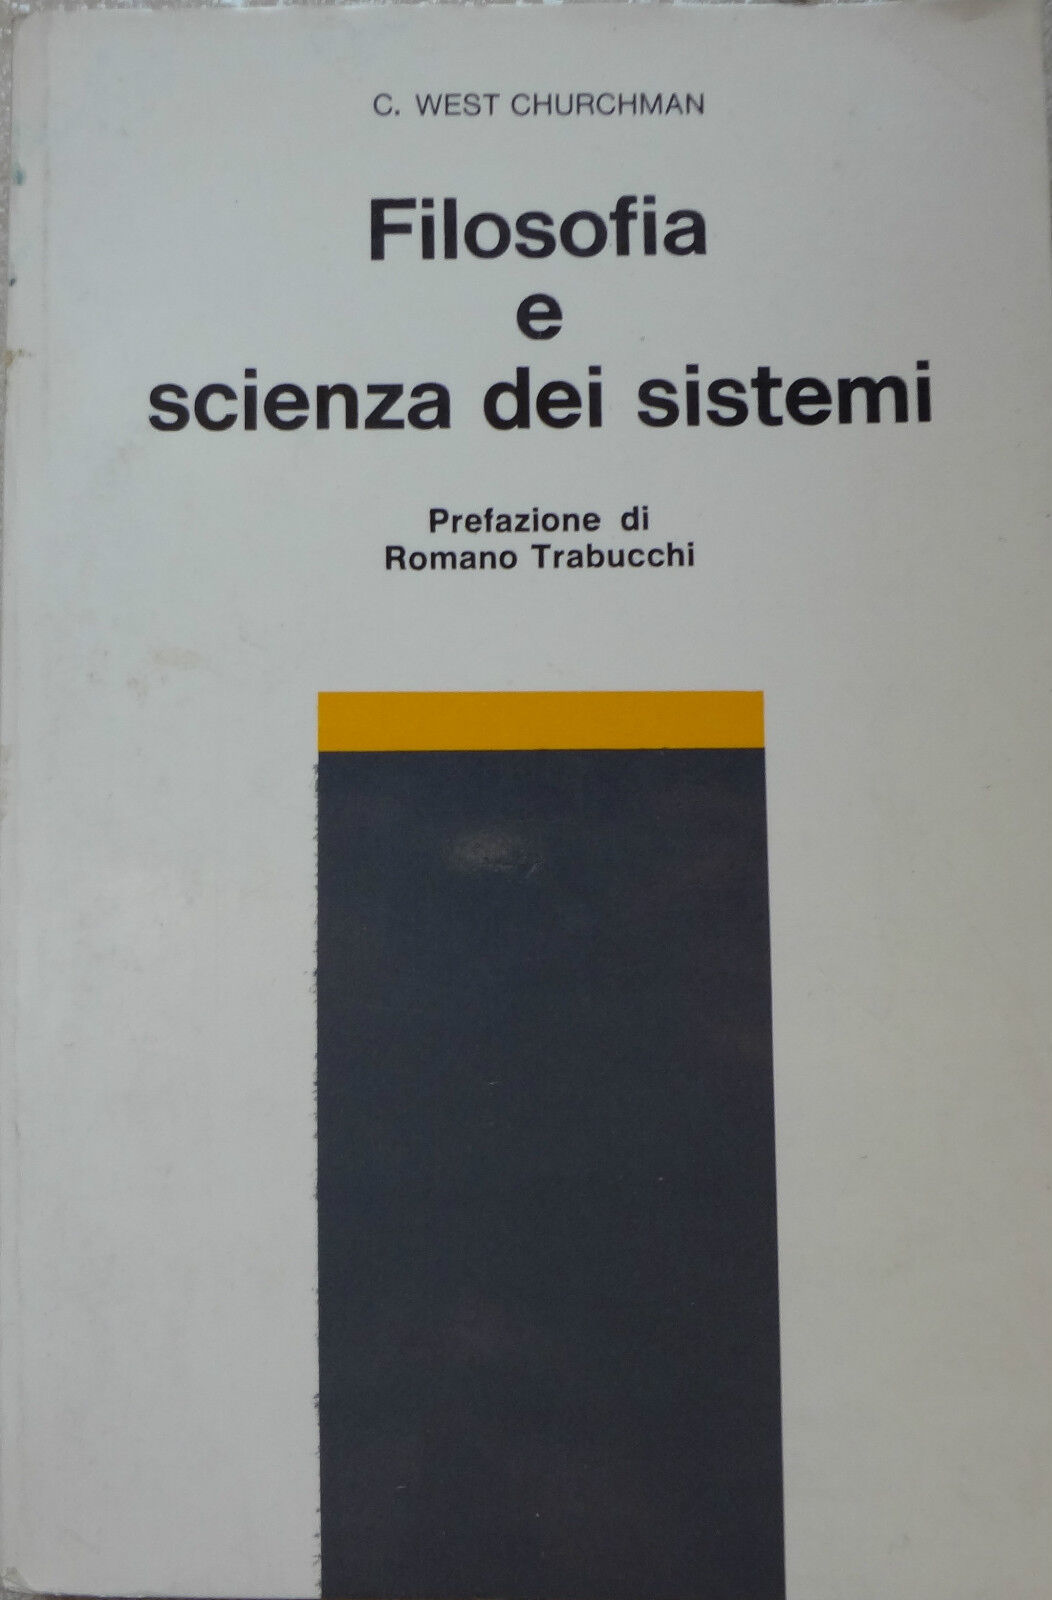 C.WEST CHURCHMAN: FILOSOFIA E SCIENZA DEI SISTEMI